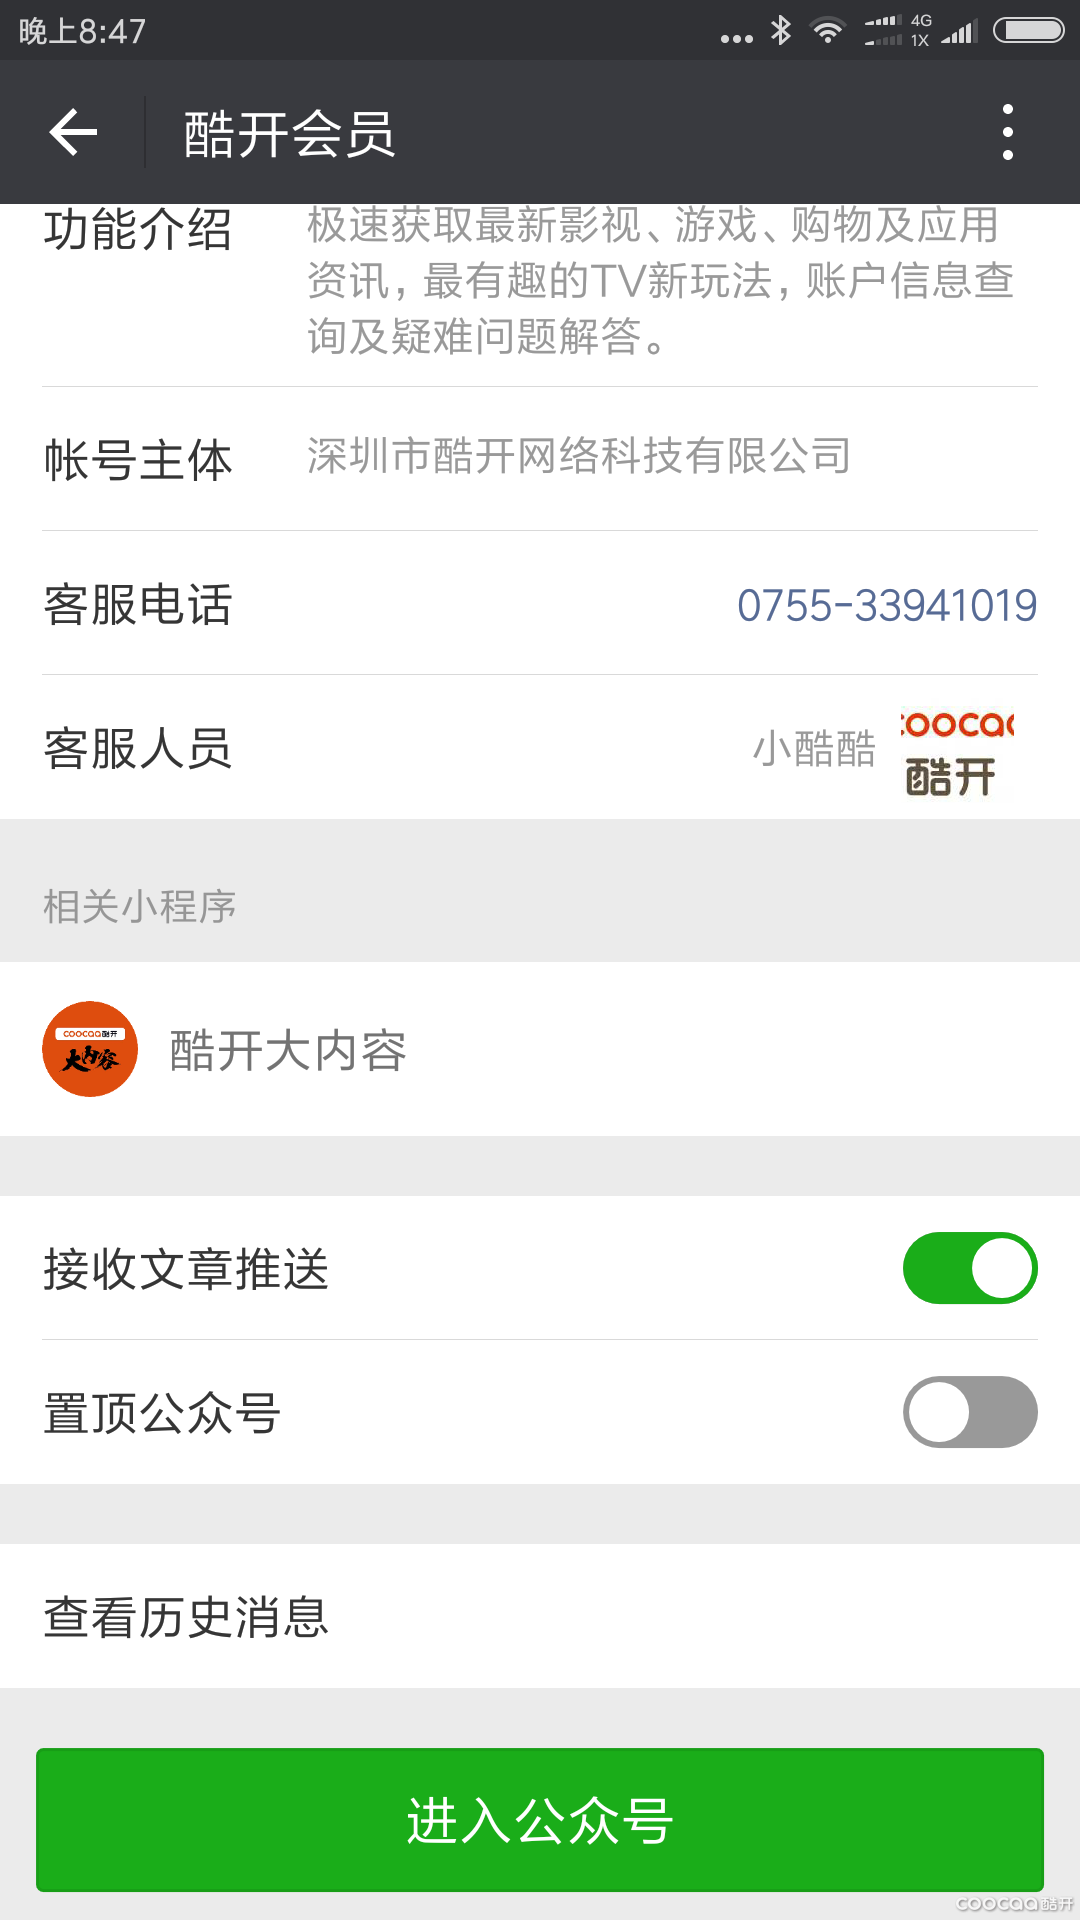 Screenshot_2017-09-05-20-47-24-811_com.tencent.mm.png